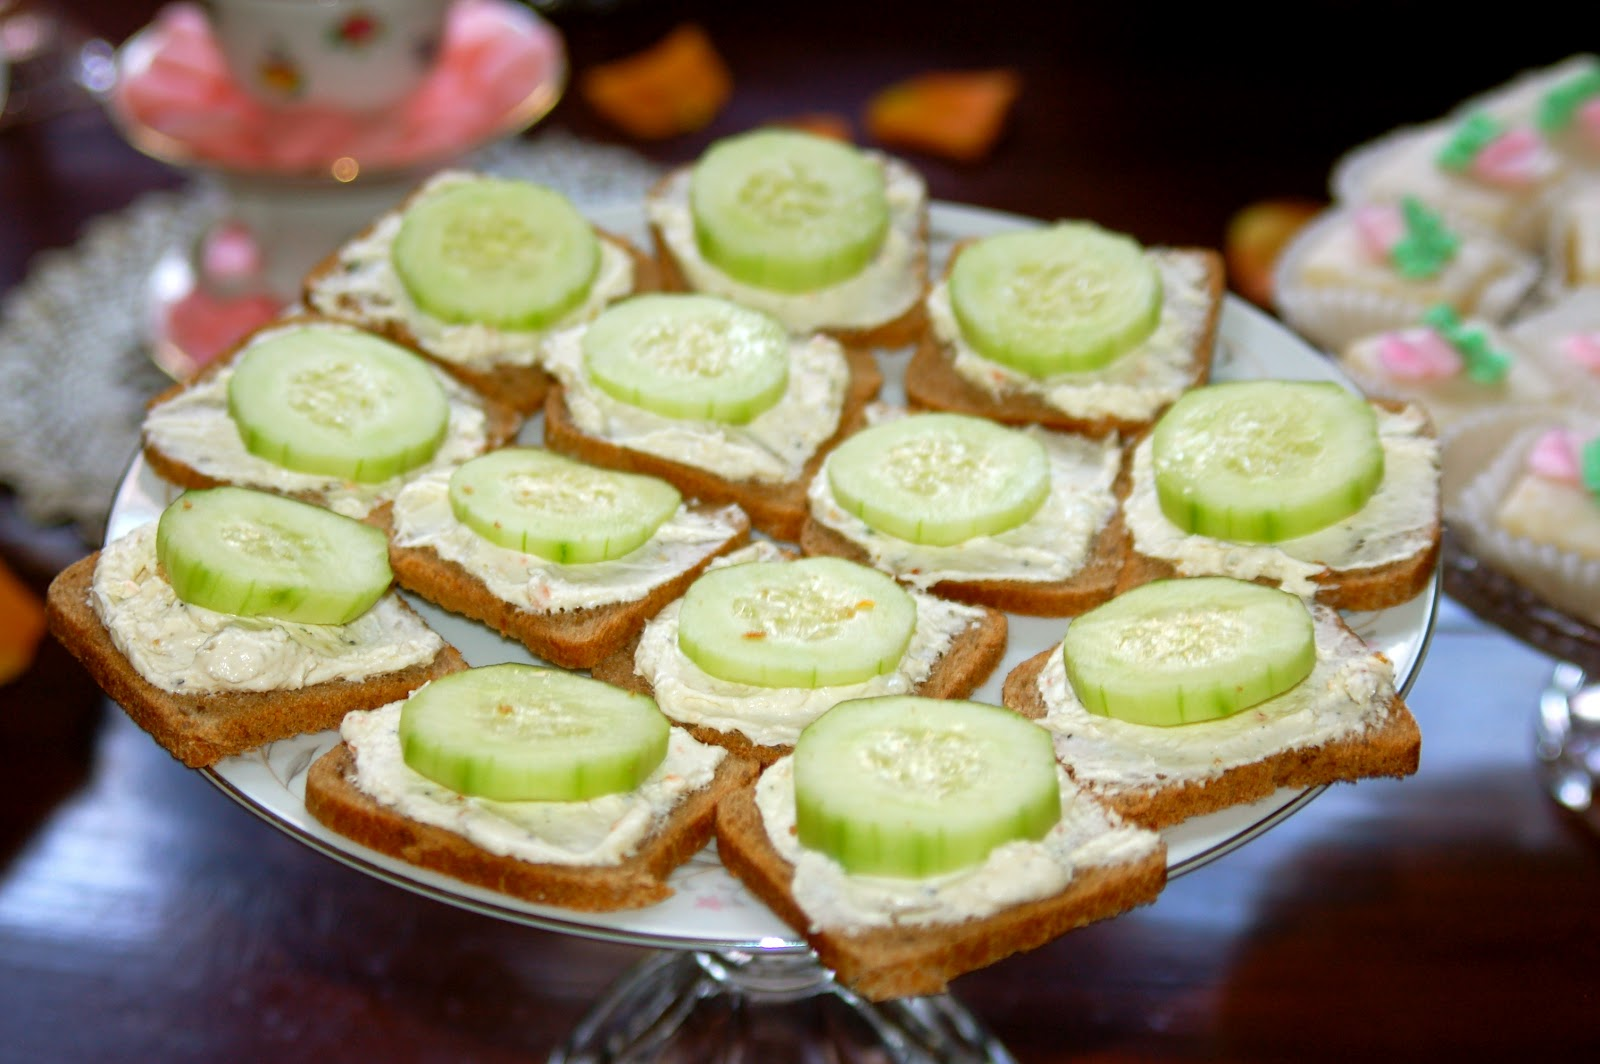 Samma Spot A Bridal Tea Party With Cucumber Finger Sandwiches